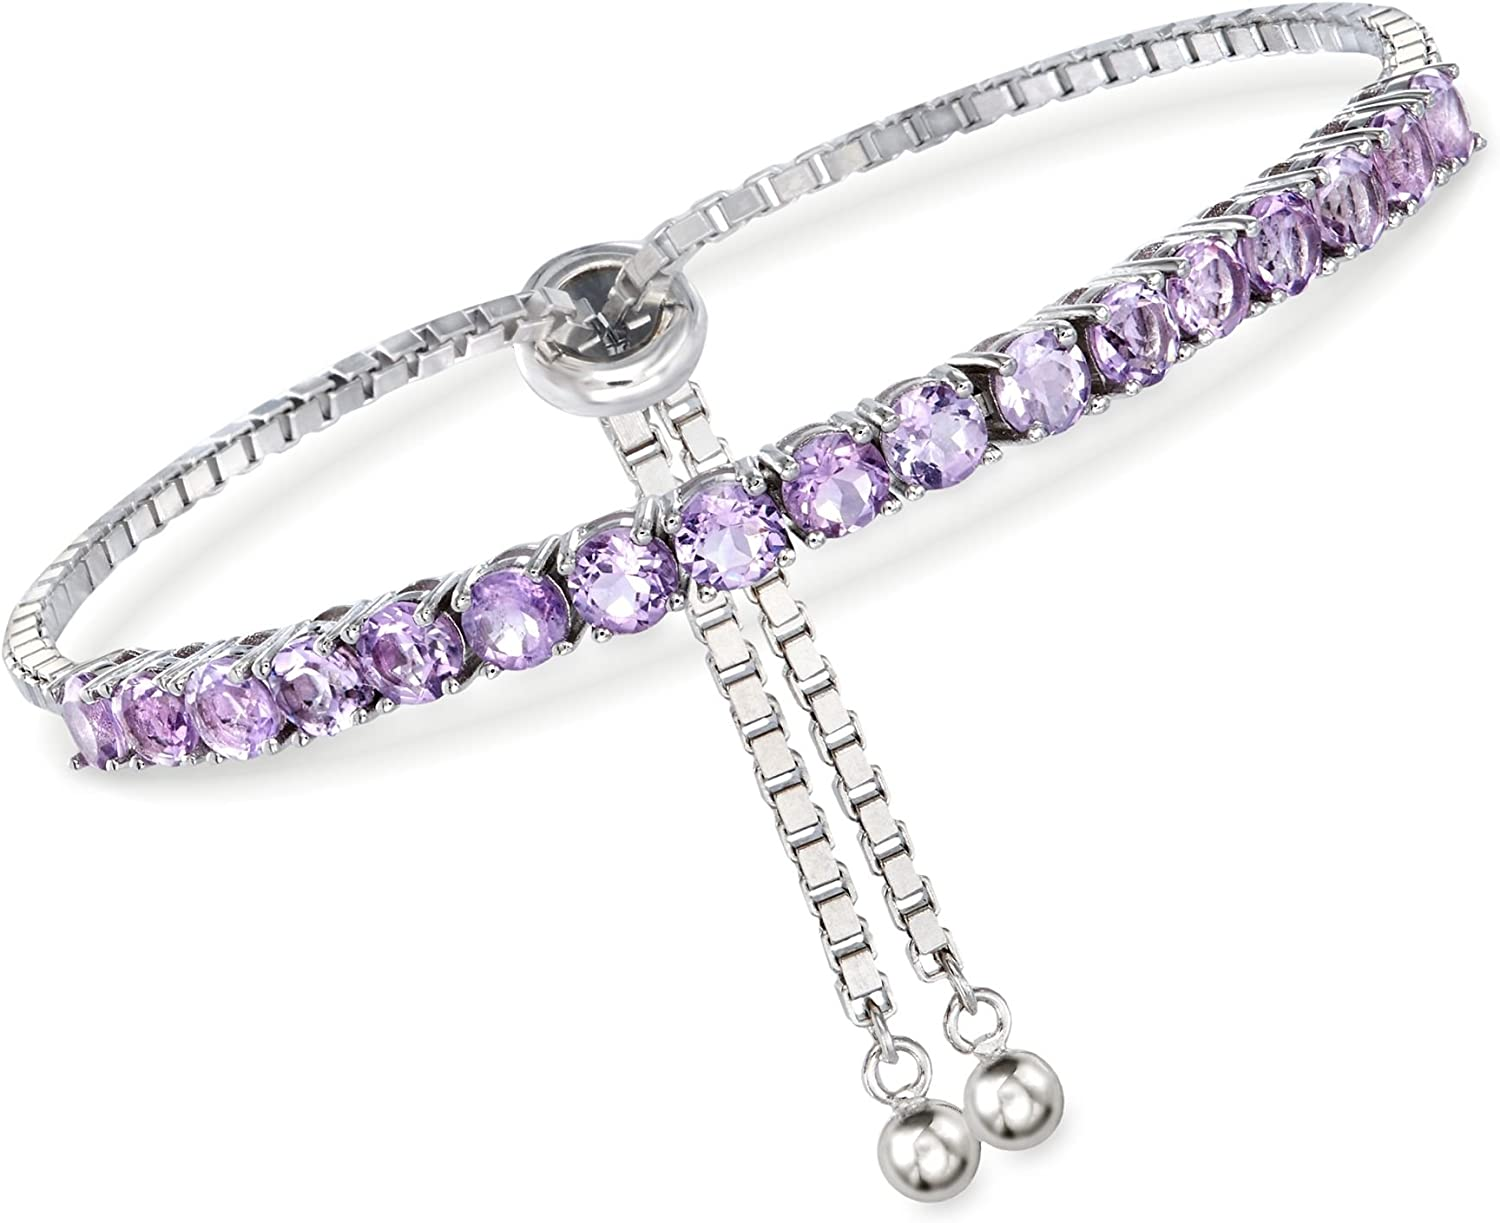 Cheap bargain Clearance SALE! Limited time! Ross-Simons 4.20 ct. t.w. Amethyst Sterling Bolo Bracelet in Sil